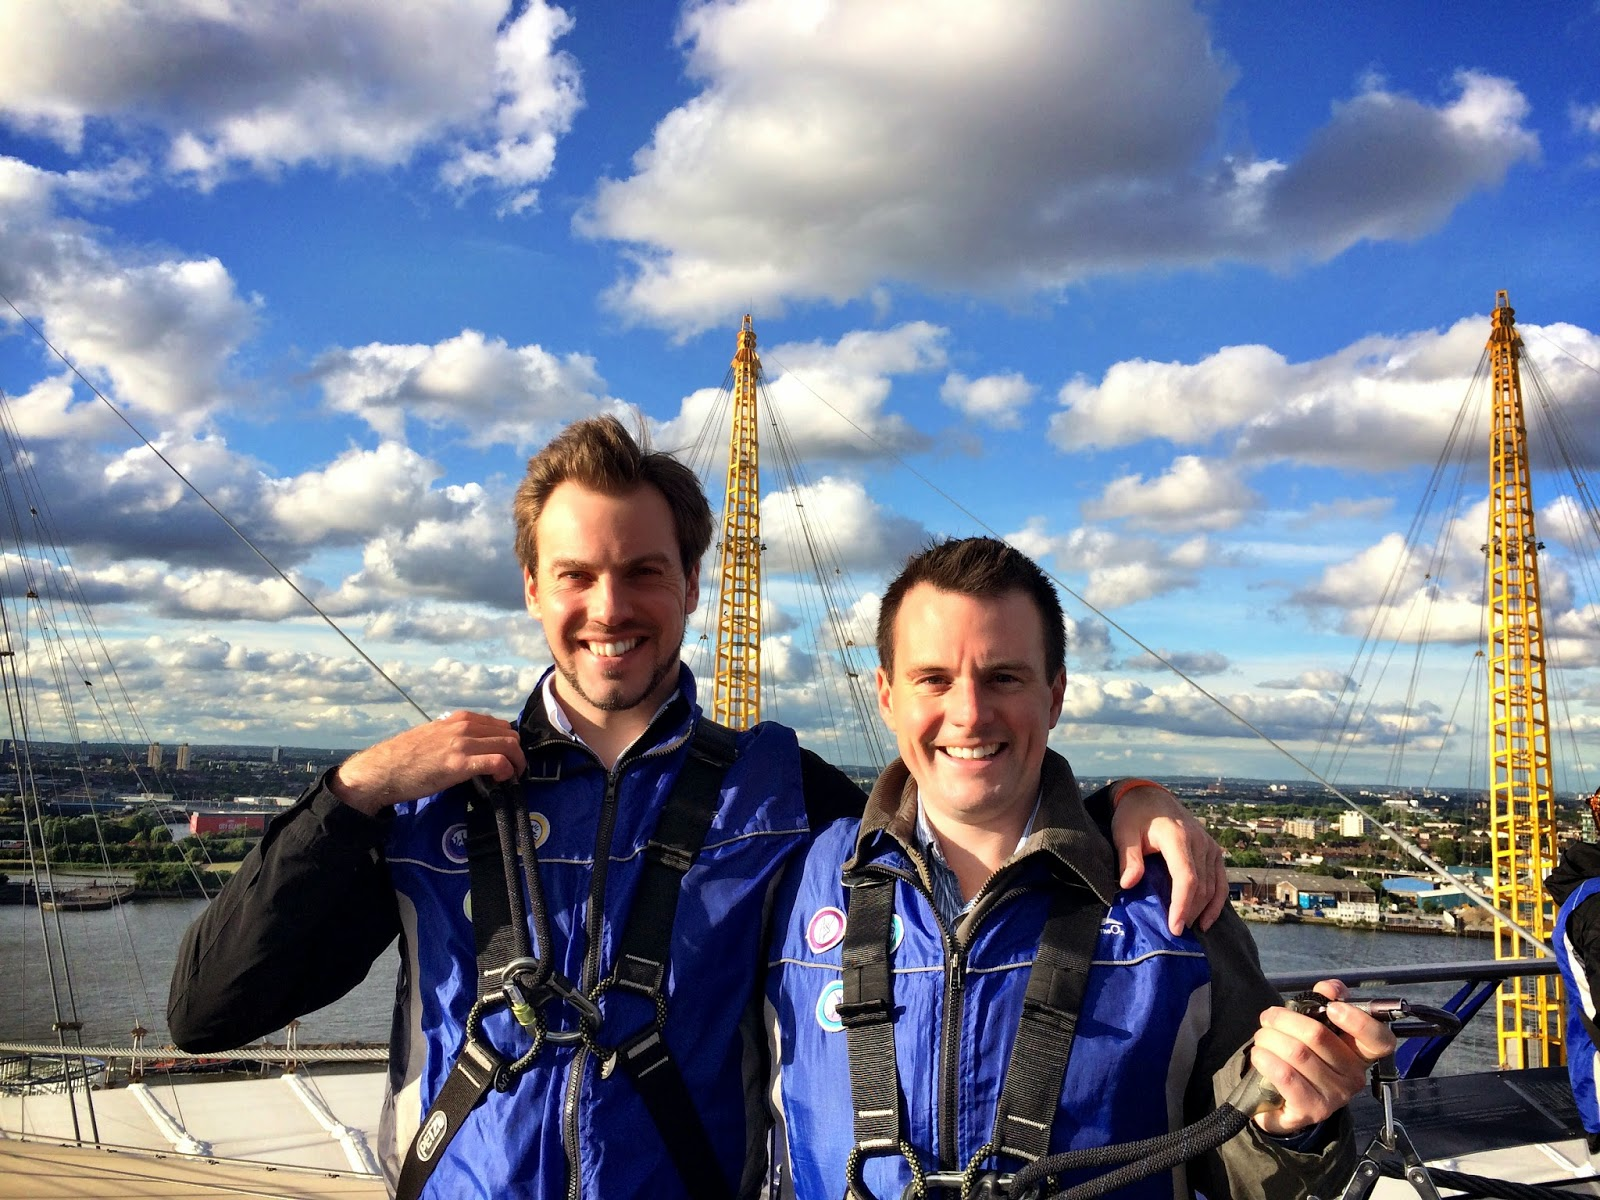 Simon and Mark on the O2 Arena viewing platform